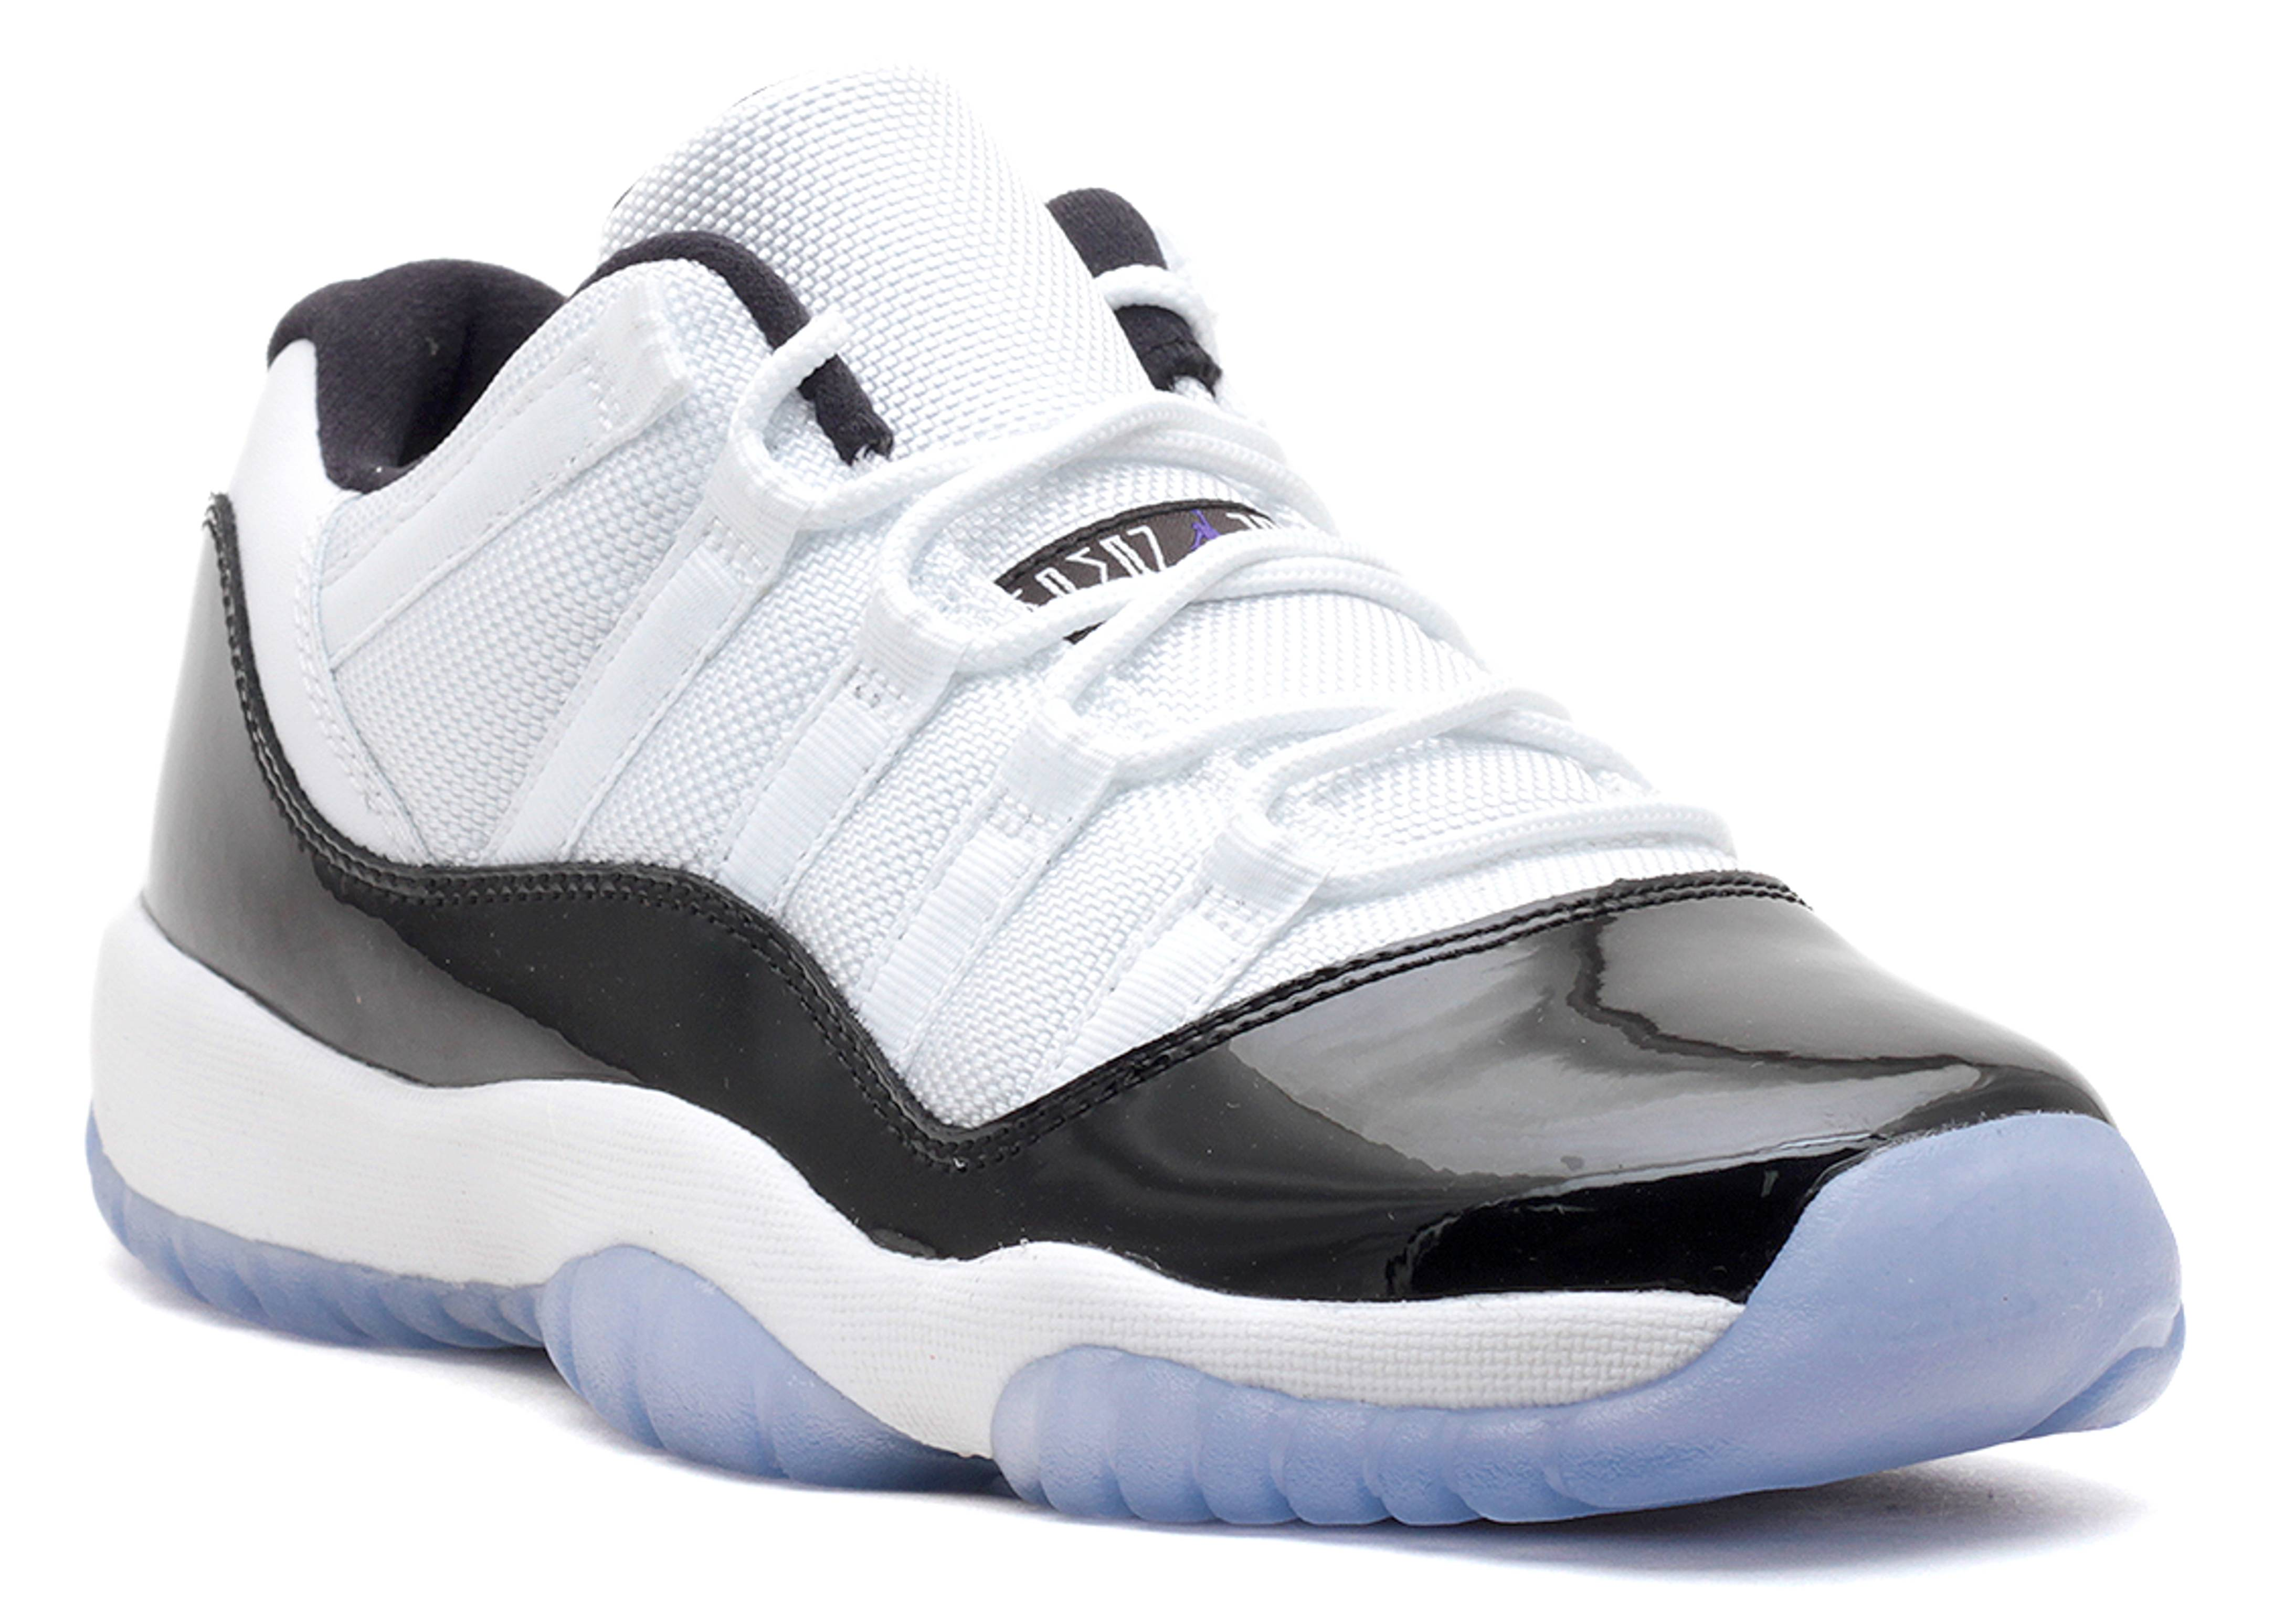 38df9d5ae72 White And Black Jordan 11 Concords